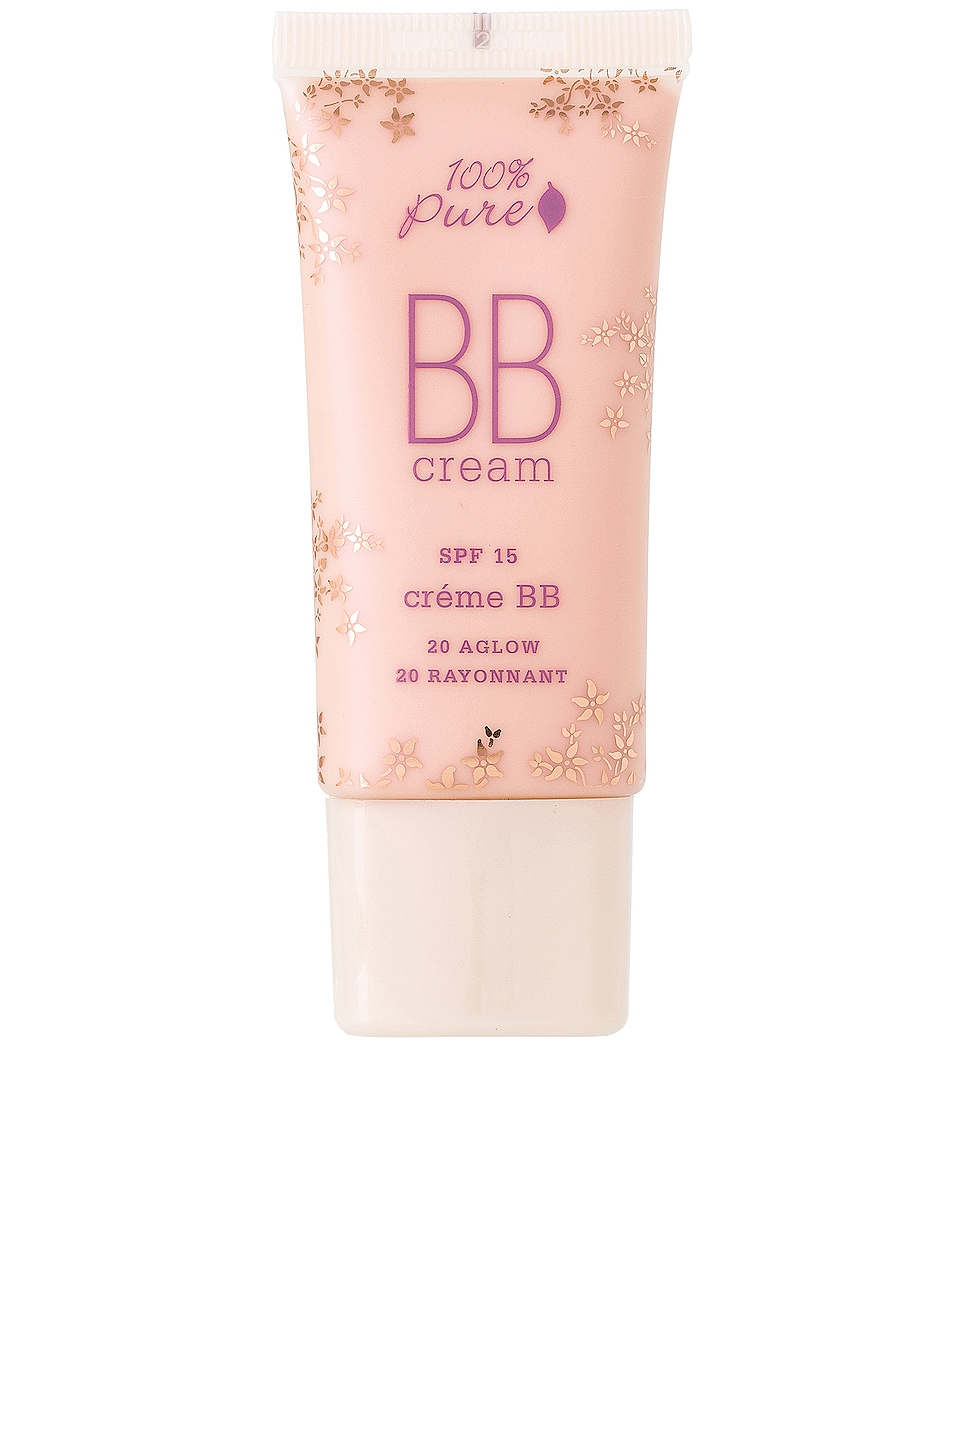 100% Pure BB Cream in Shade 20 Aglow